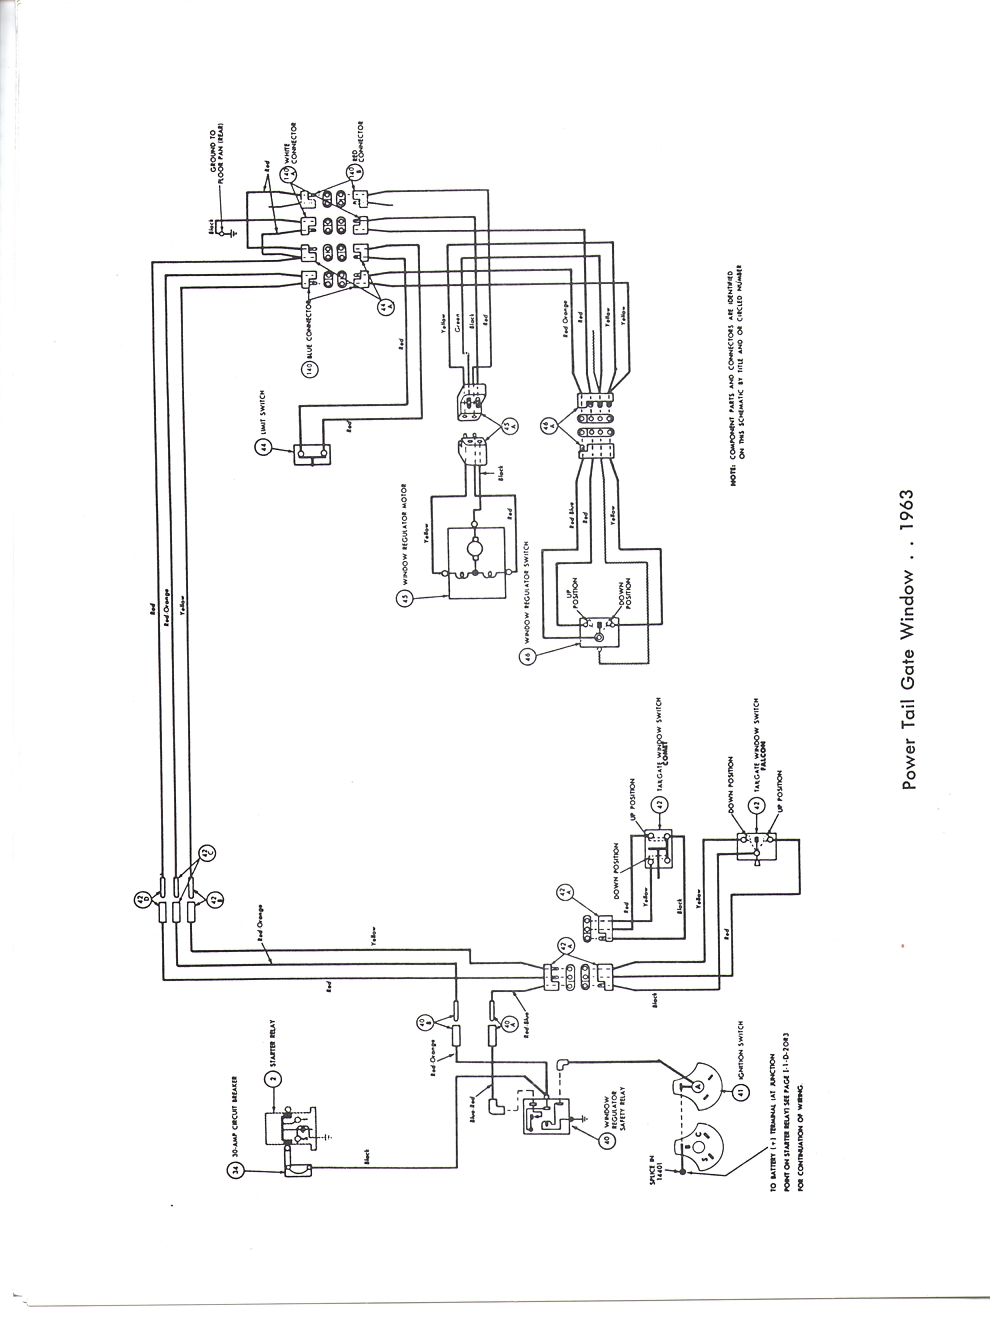 Falcon Diagrams 1968 Mercury Cyclone Wiring Diagram Schematic Comet Drawing A Complete For 1963 Figure 1 2 3